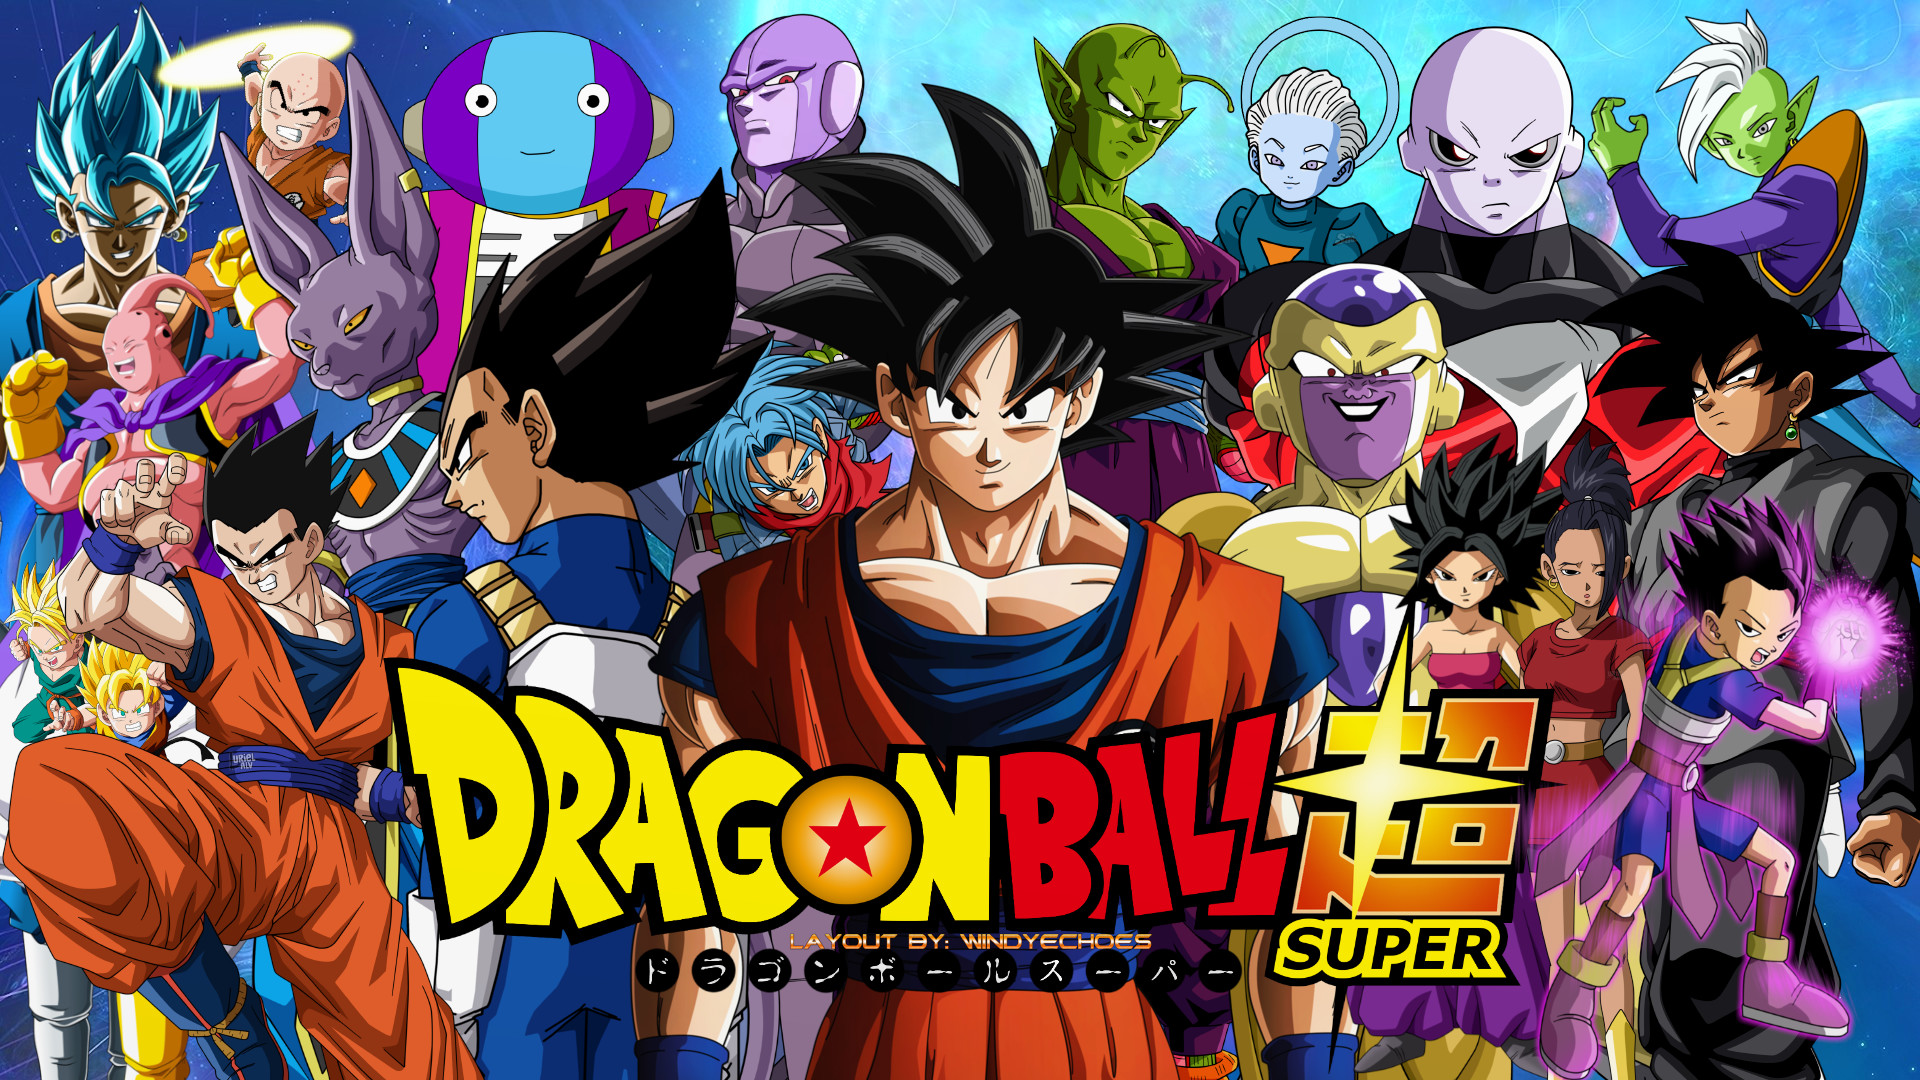 Image Result For Anime Wallpaper Dragon Ball Supera